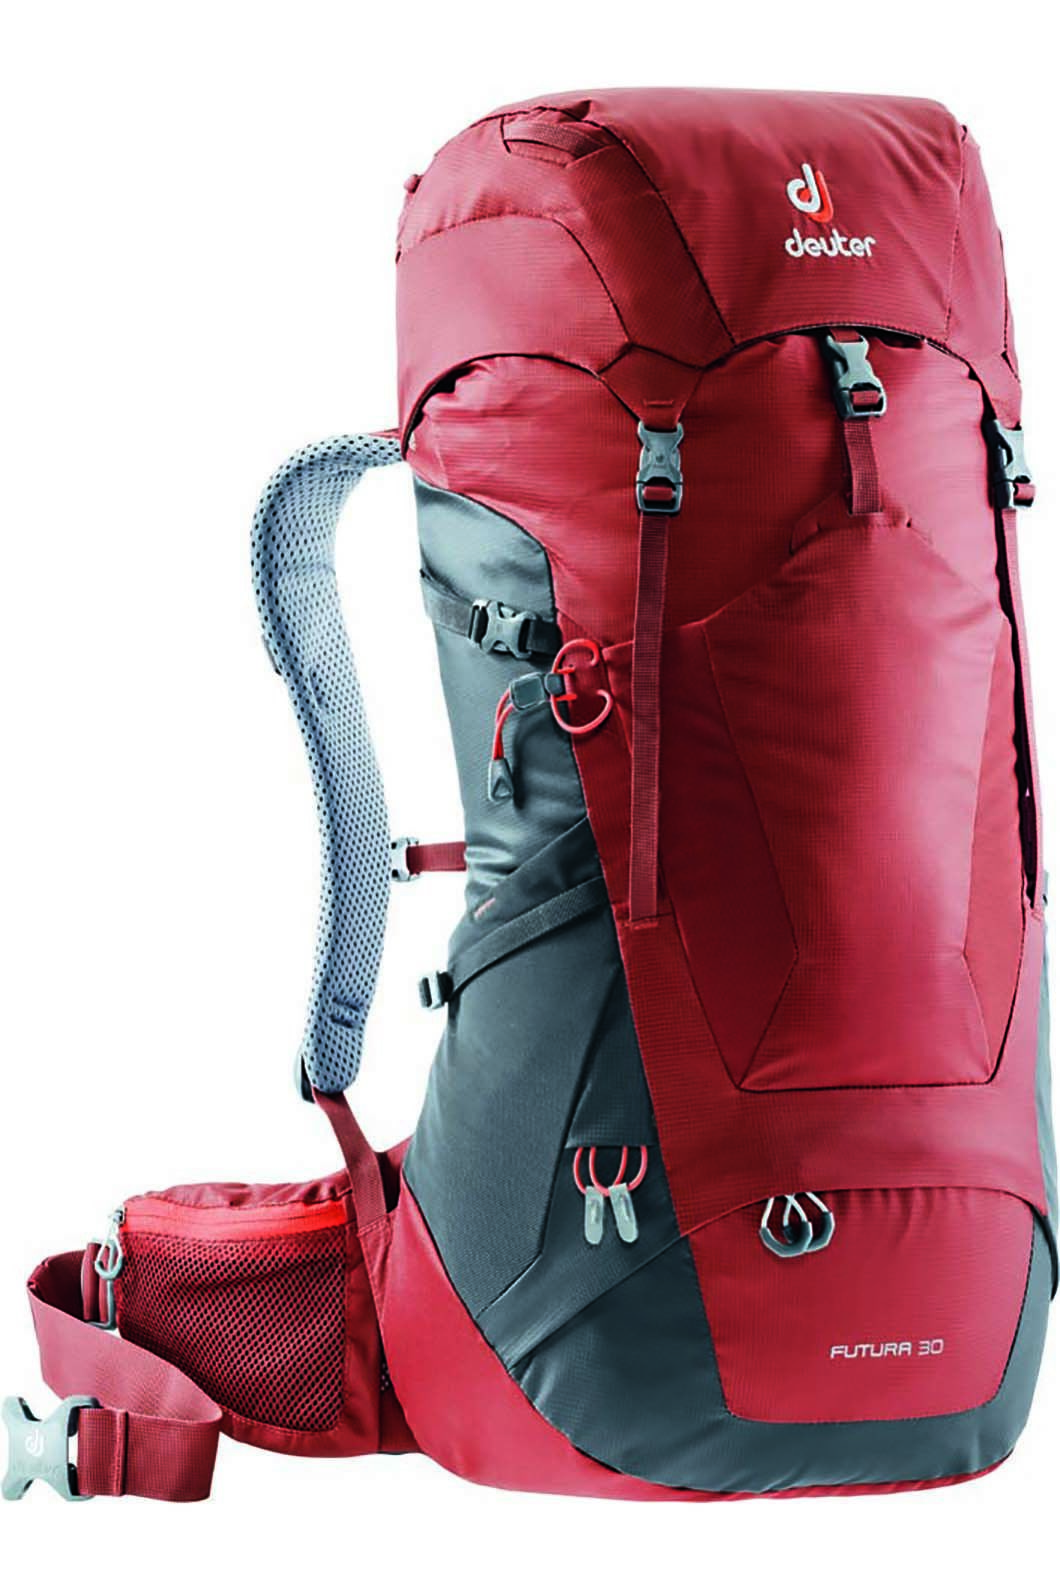 Deuter Futura Trekking Pack 30L, None, hi-res